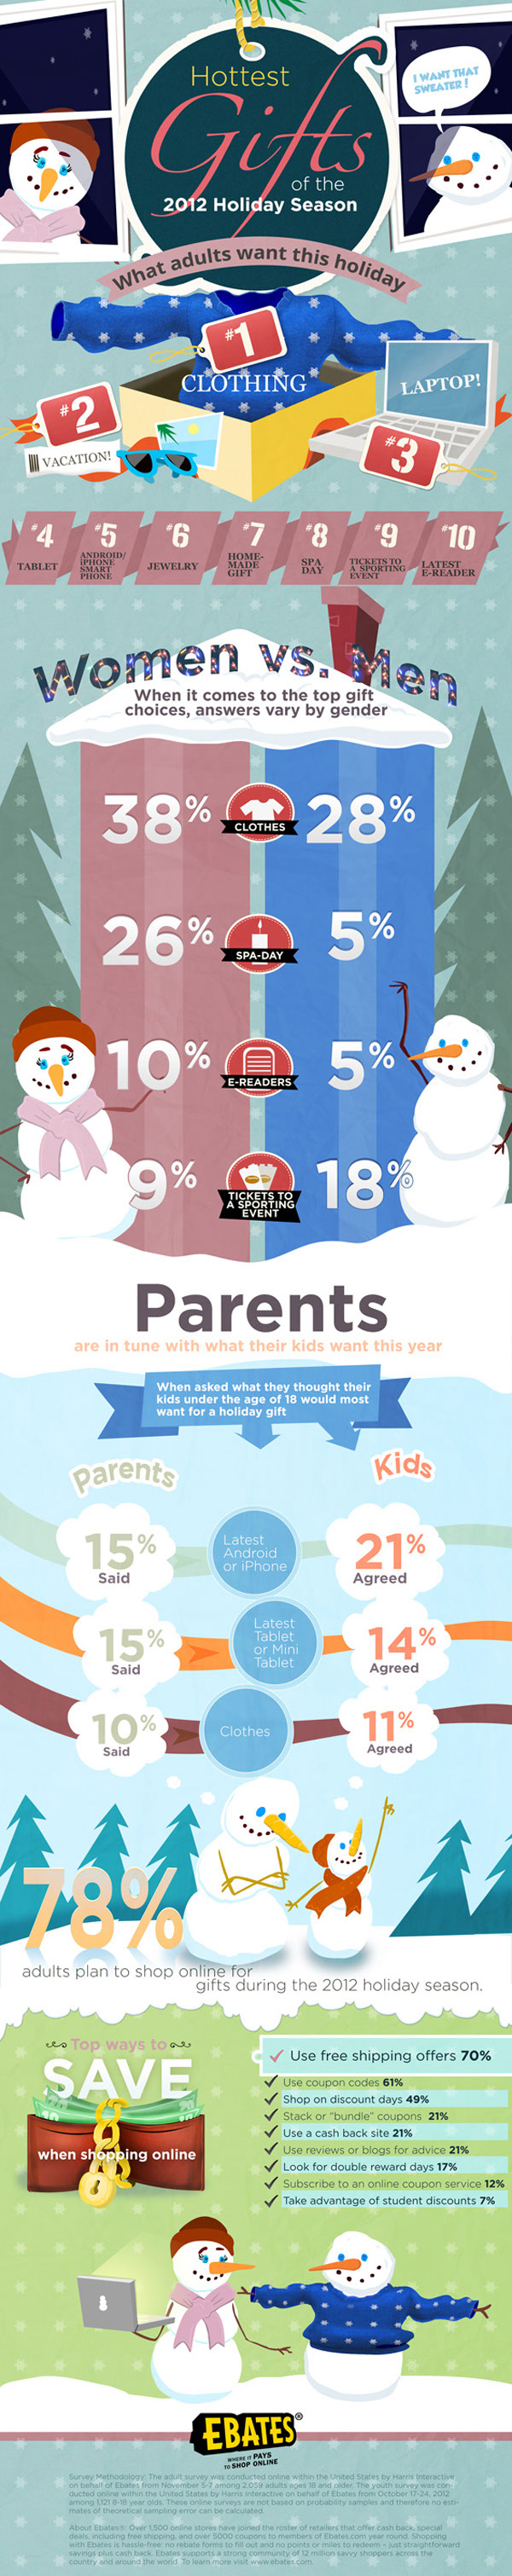 Christmas 2012 Gift Trends-Infographic